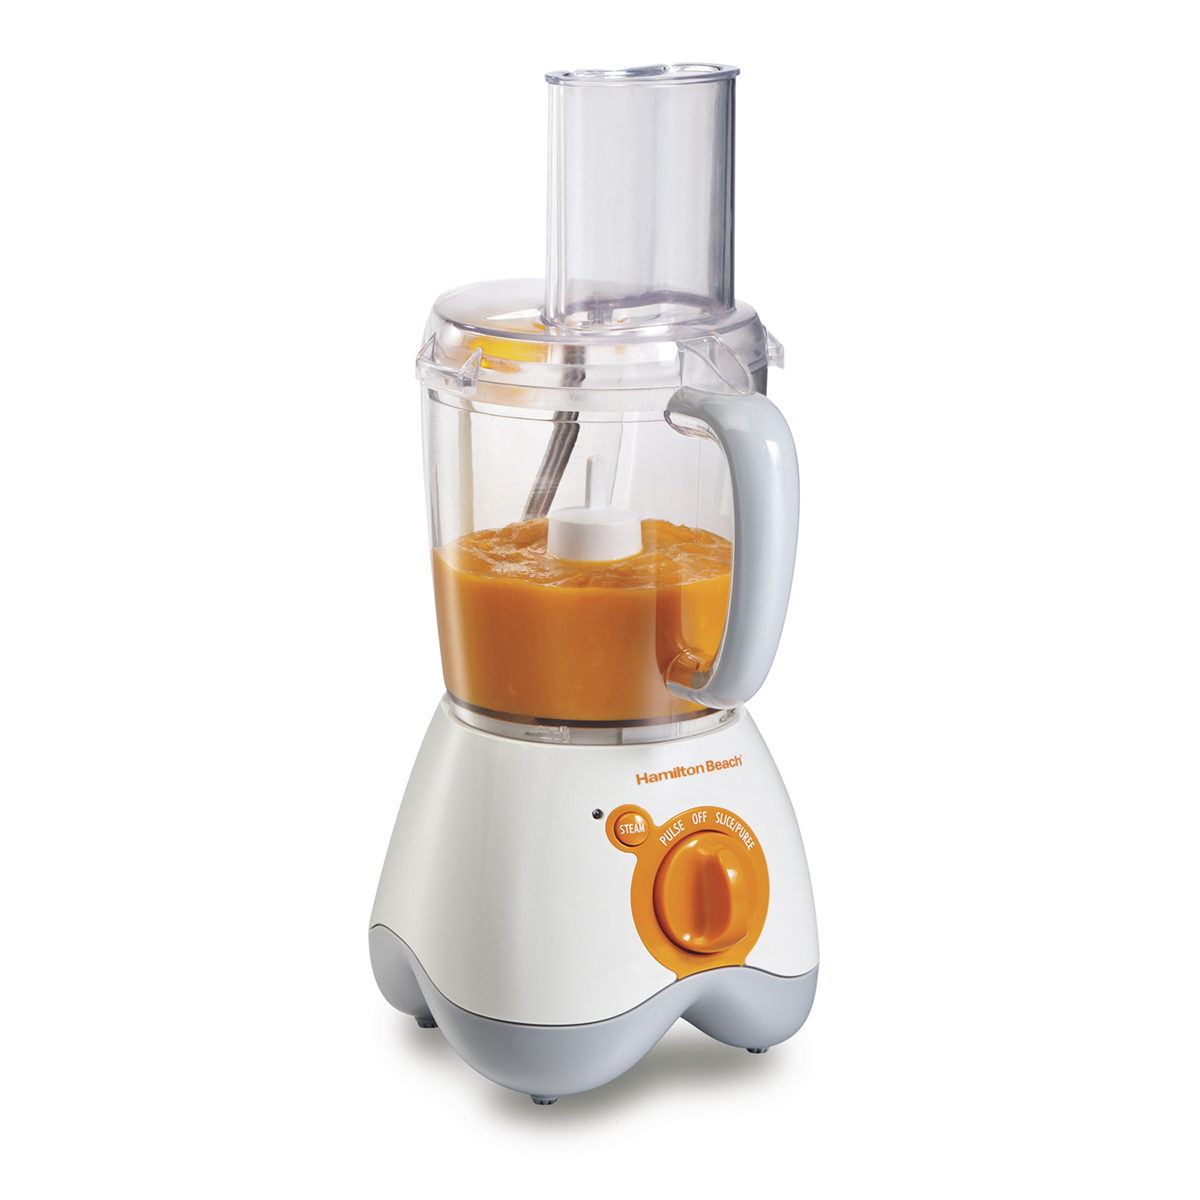 bébé All-in-One Baby Food Maker (36531)